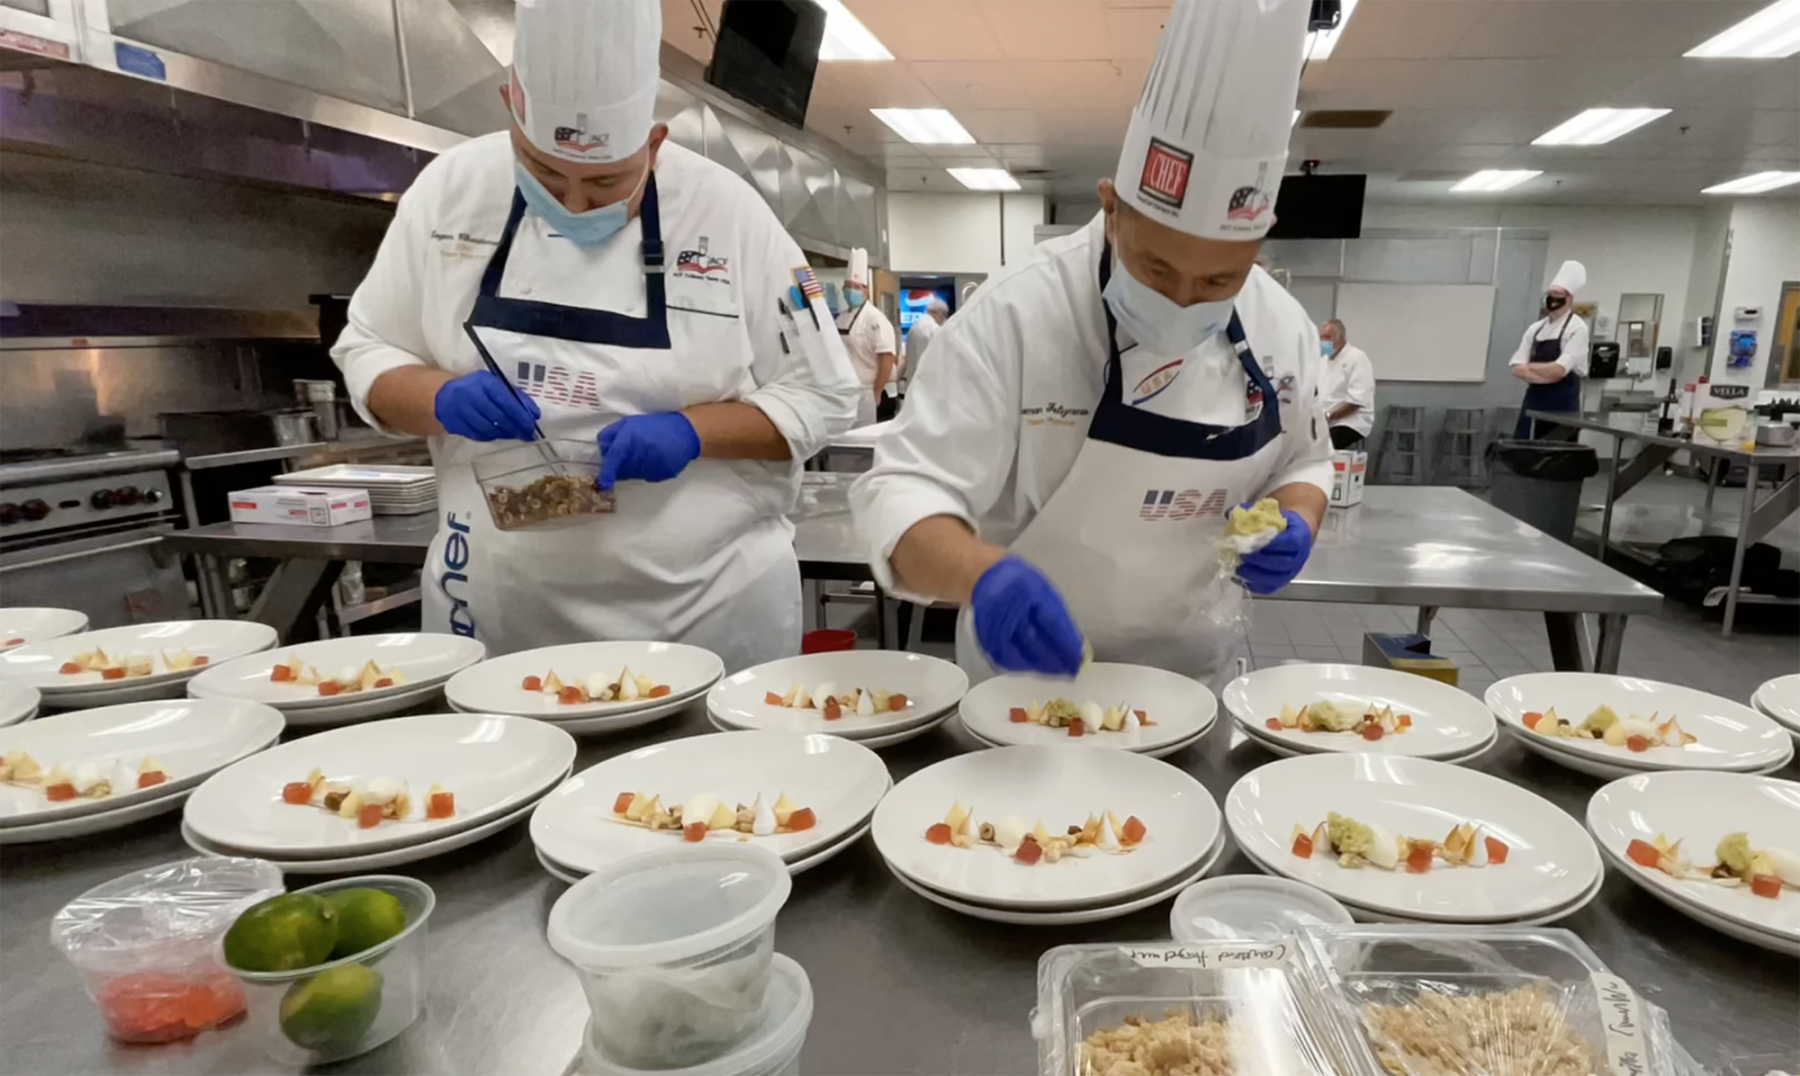 two chefs in kitchen with numerous plates in front of them